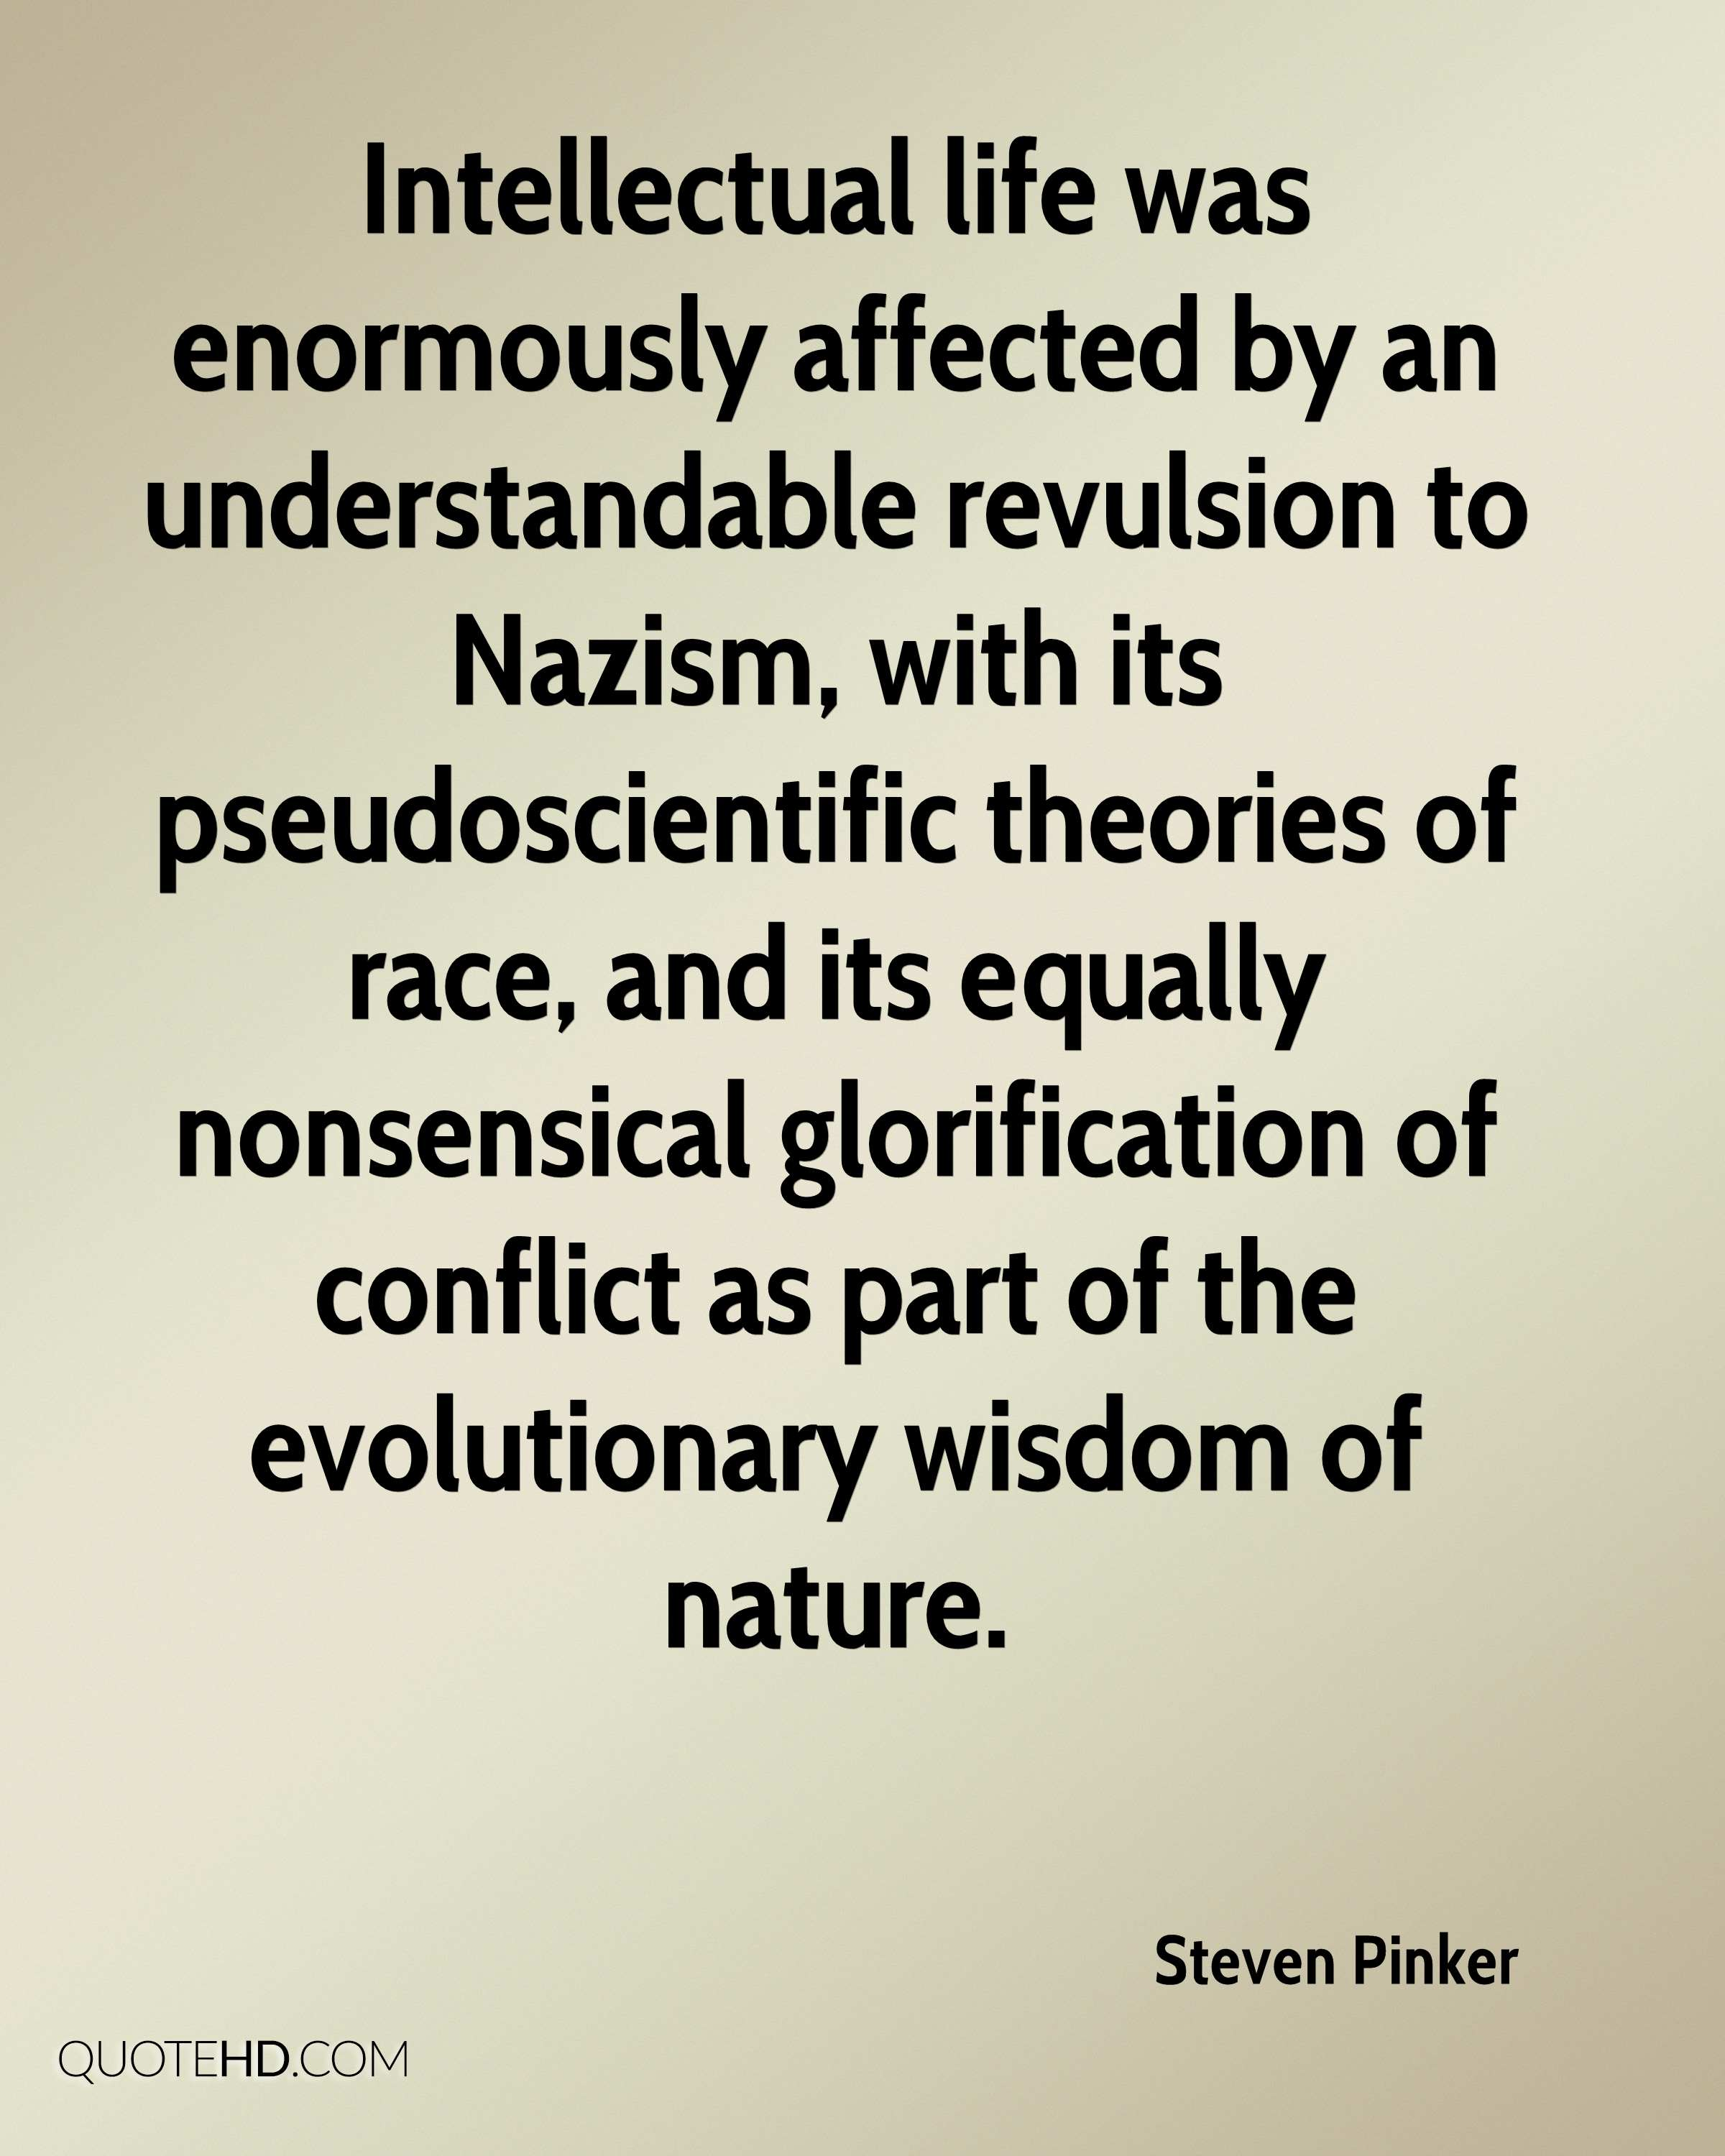 Intellectual life was enormously affected by an understandable revulsion to Nazism, with its pseudoscientific theories of race, and its equally nonsensical glorification of conflict as part of the evolutionary wisdom of nature.